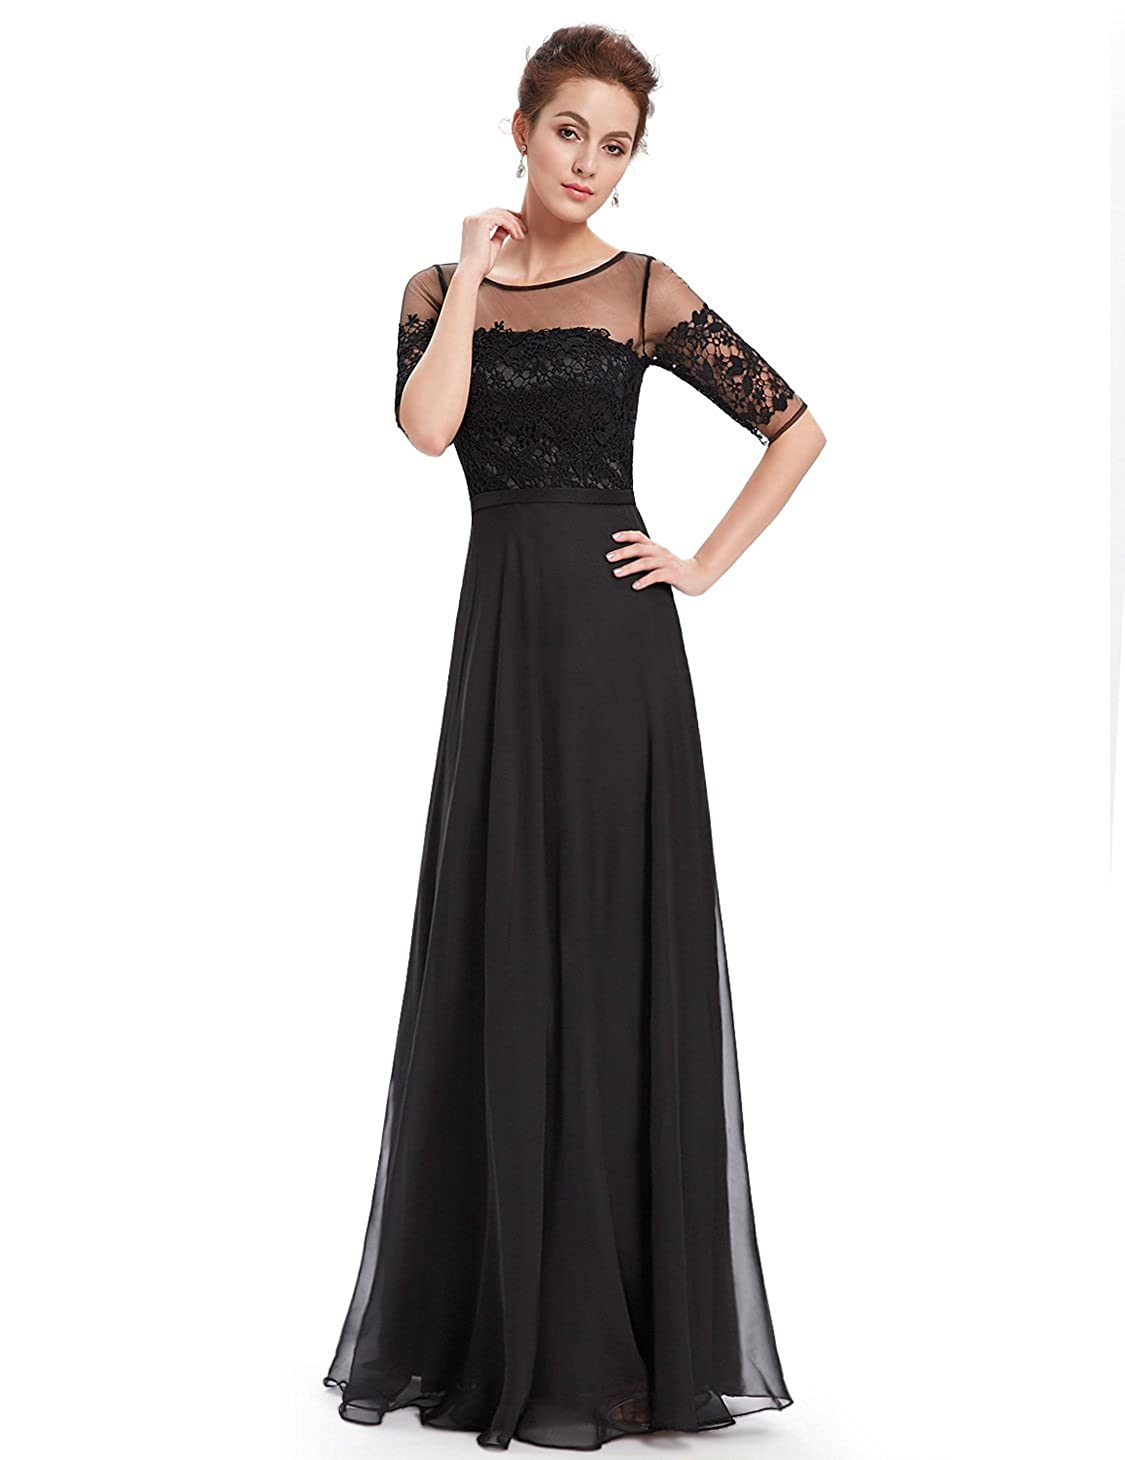 c0a59d2c8b16a2 Ever-Pretty Womens Floor Length Three-Quarter Sleeve Evening Dress 08459 at  Amazon Women's Clothing store: